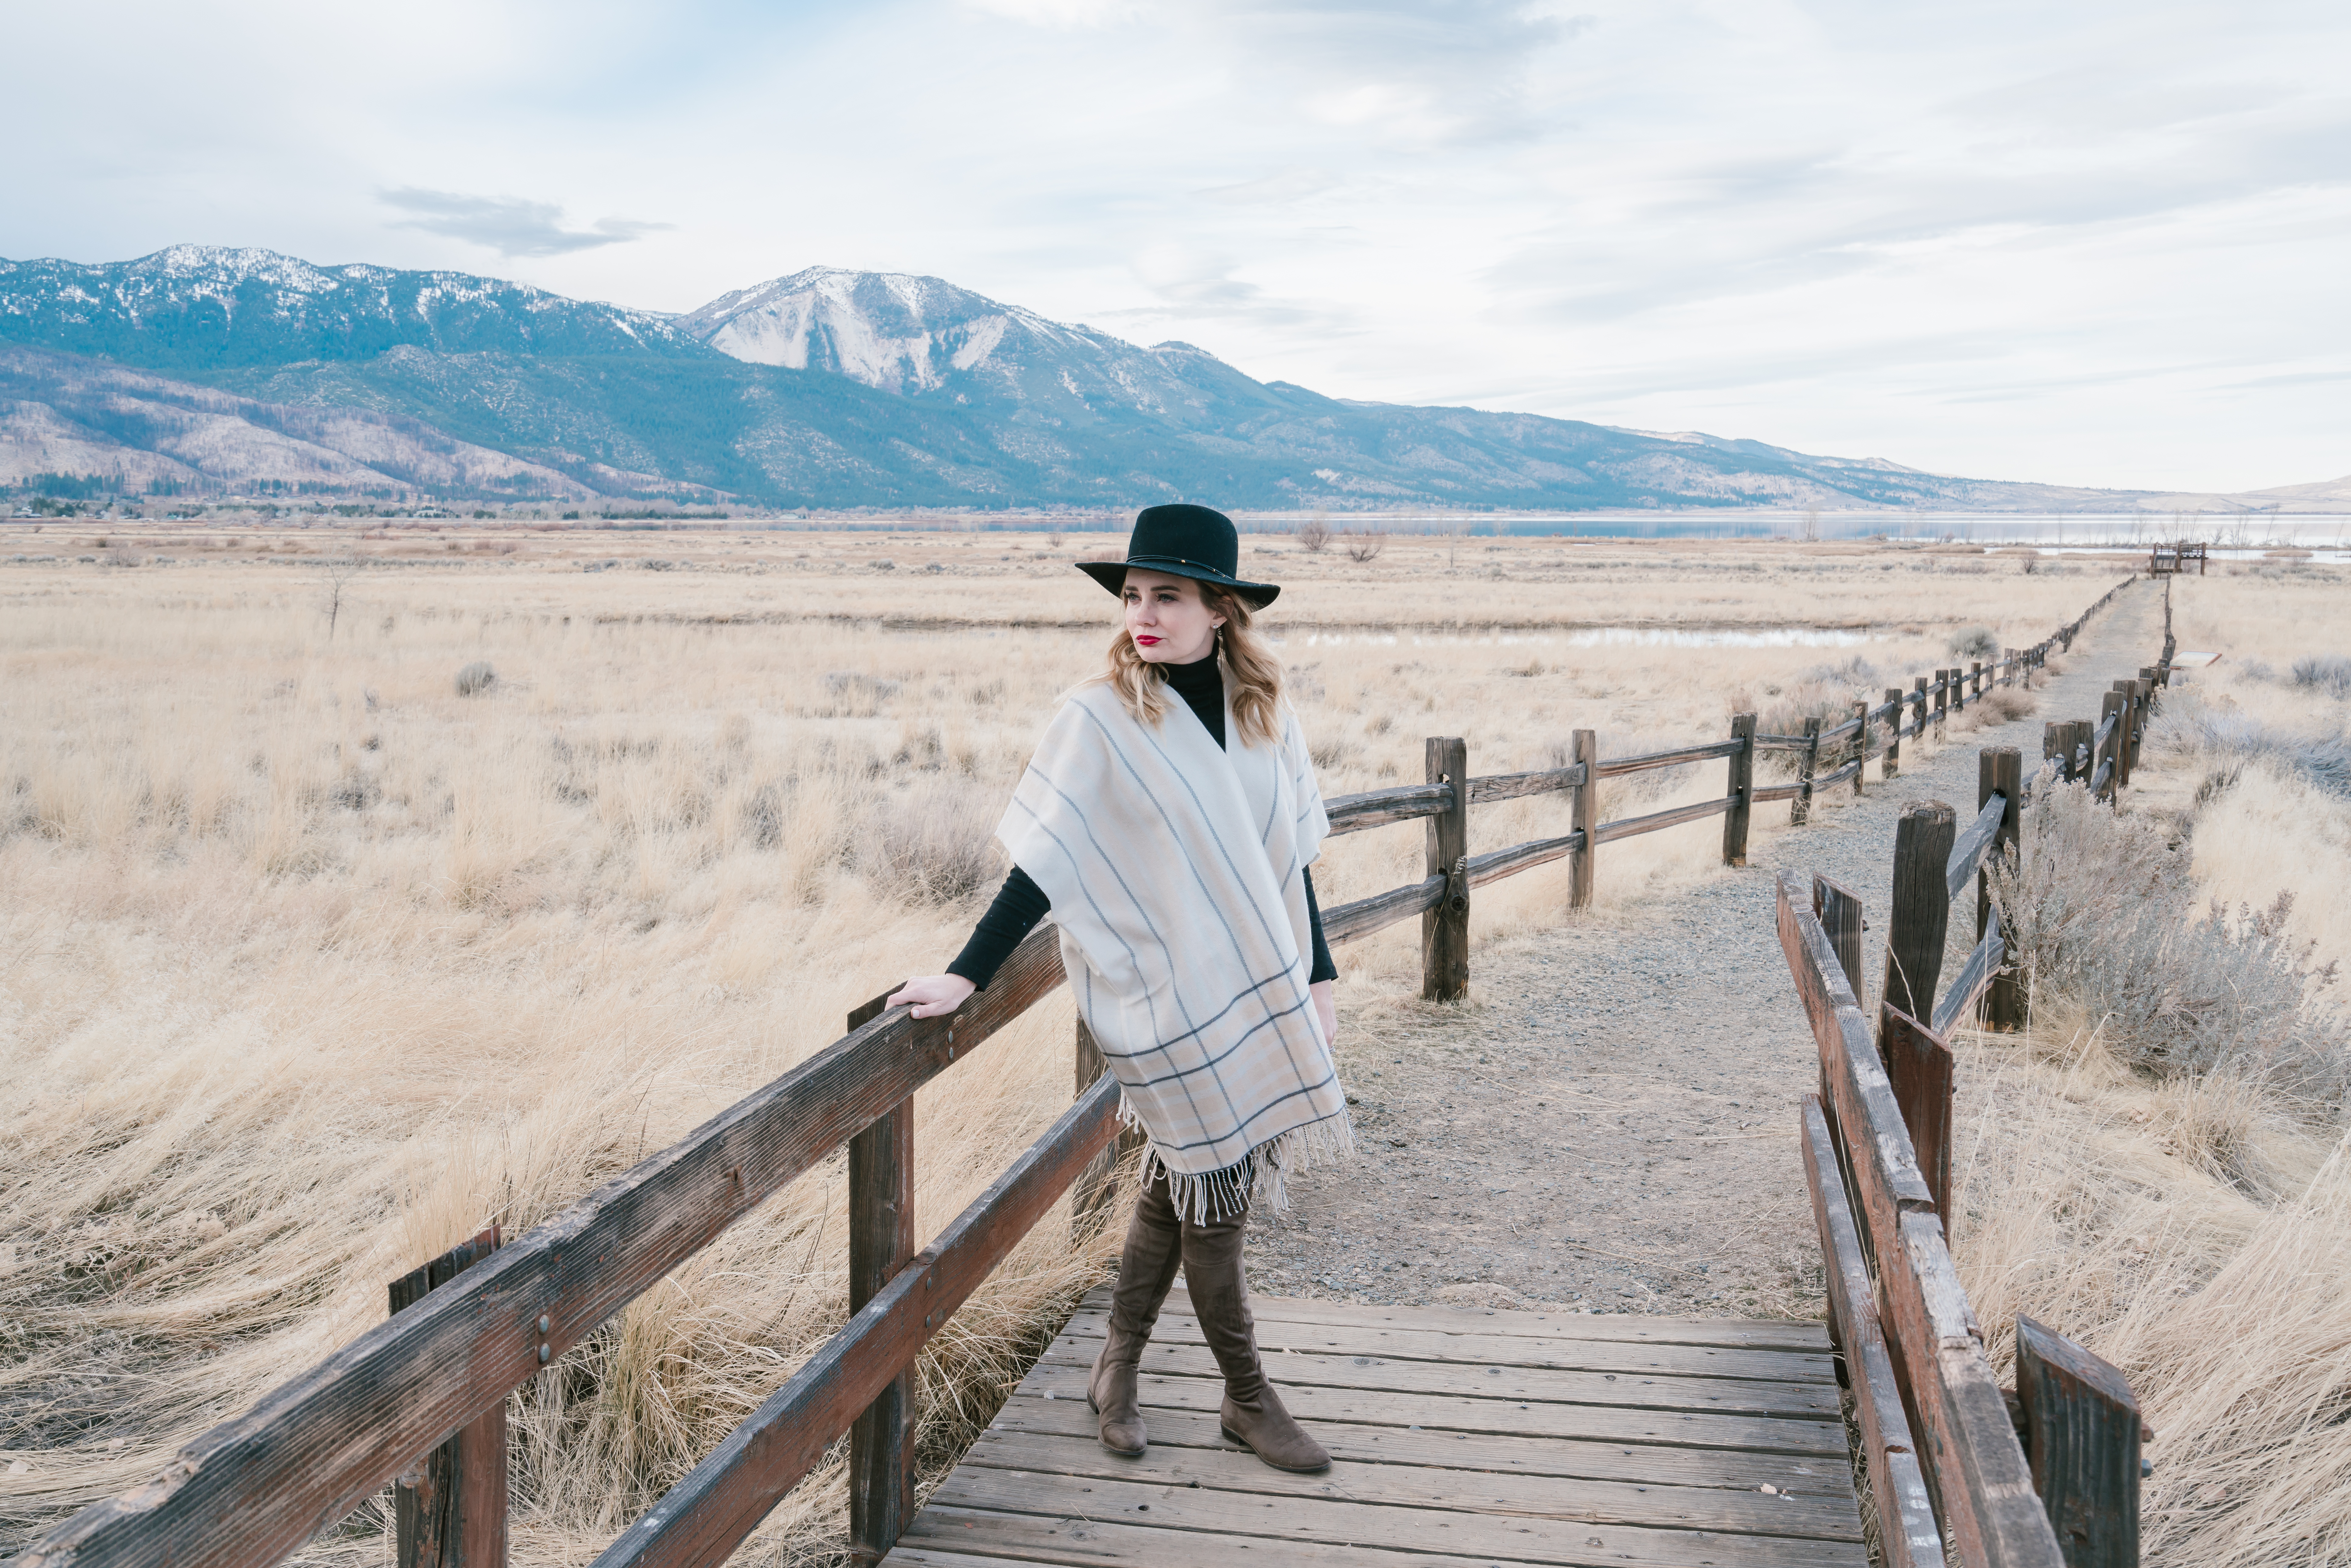 Memphis Fashion Blogger, Pretty in Pink Megan shares a look at her travels around Lake Tahoe. Including cute travel outfits!